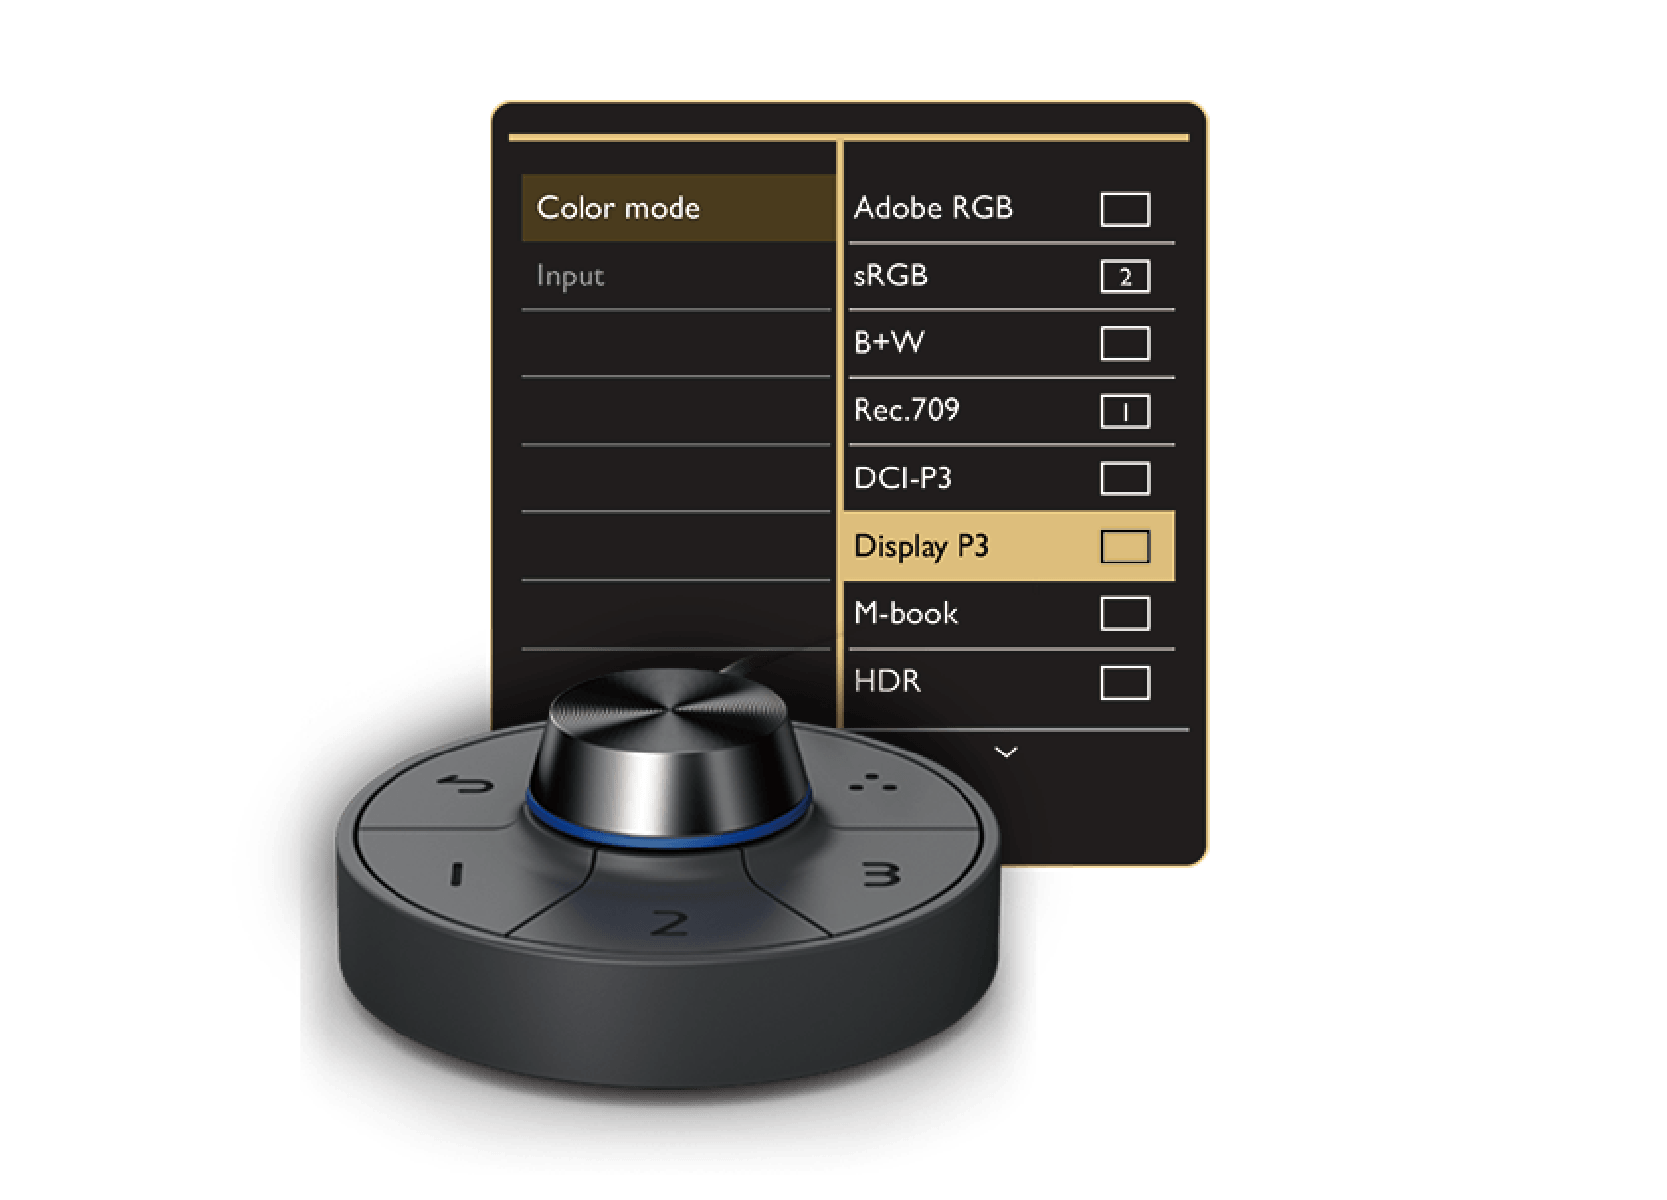 using hotkey puck g2 of benq photographer monitor to access preferred color modes and features using these preset shortcuts